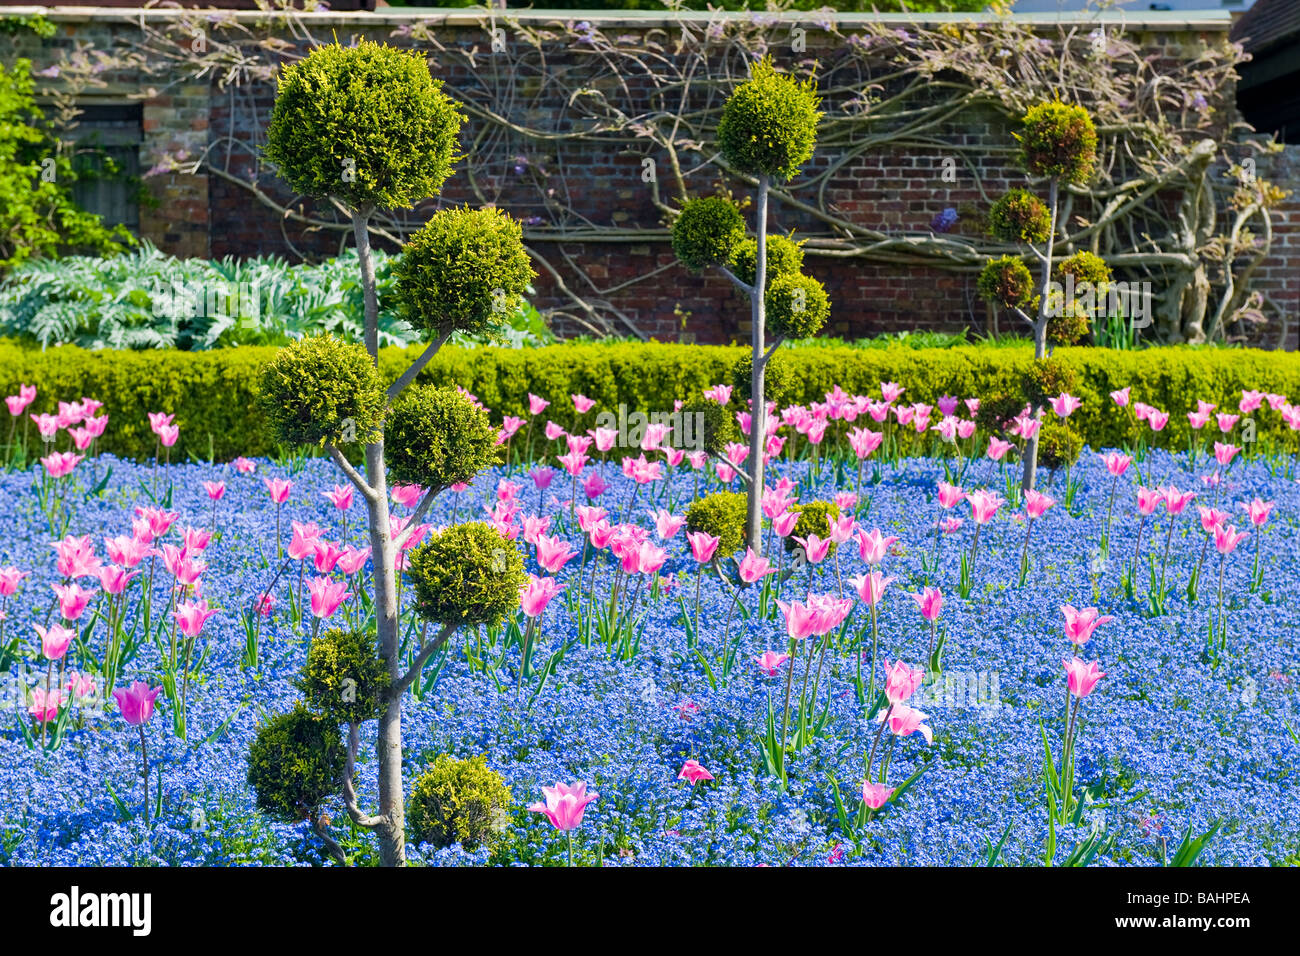 Spring in Golders Hill Park , ornamental gardens with colourful display of tulips , forget-me-not & privet hedges - Stock Image